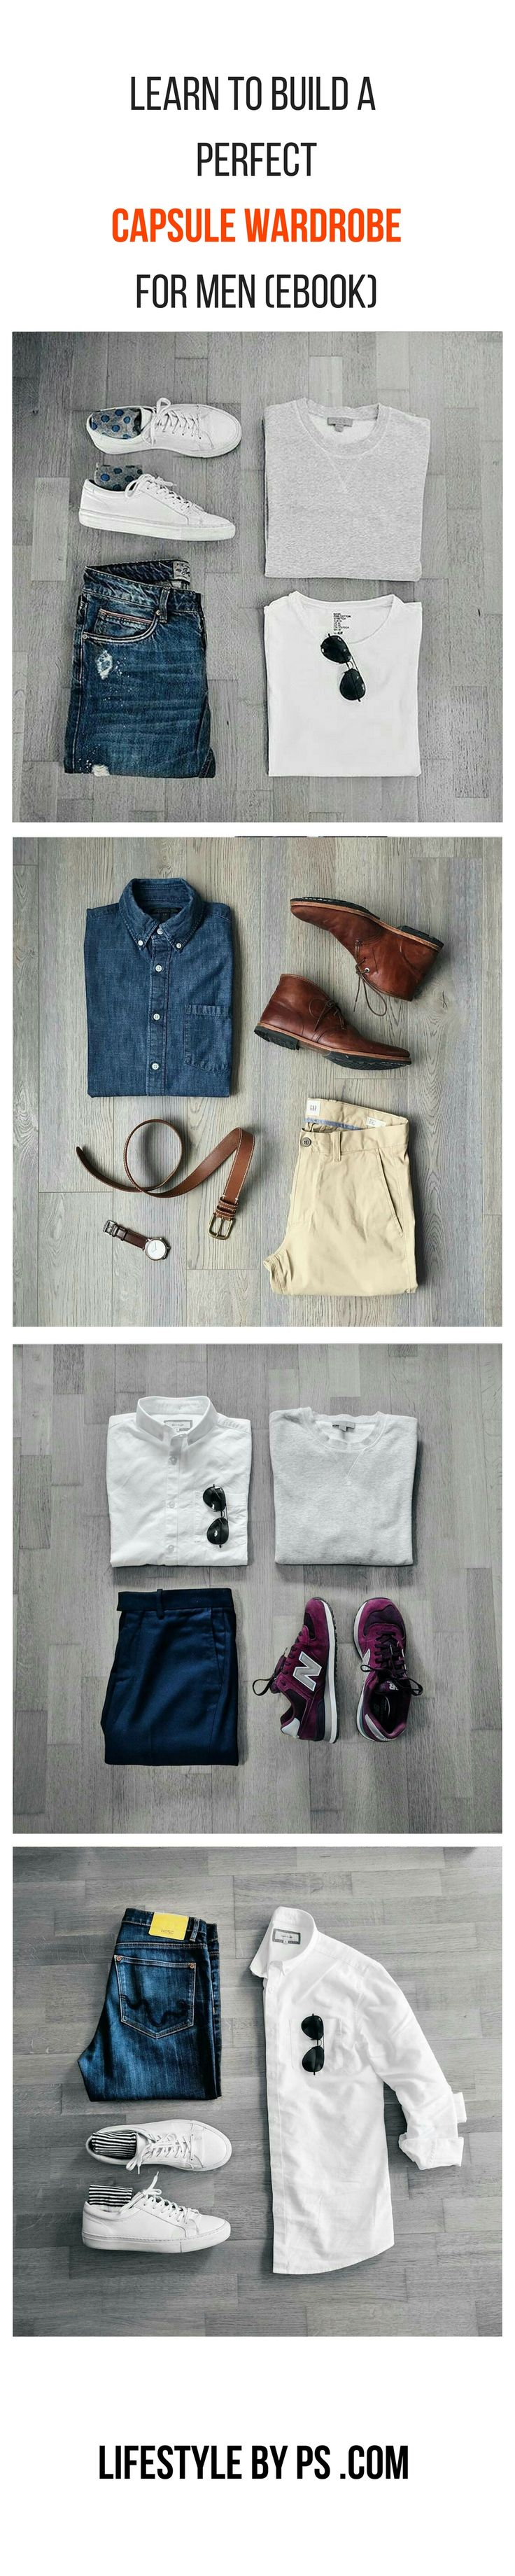 Capsule Wardrobe For men eBook. #mens #fashion #capsule #wardrobe